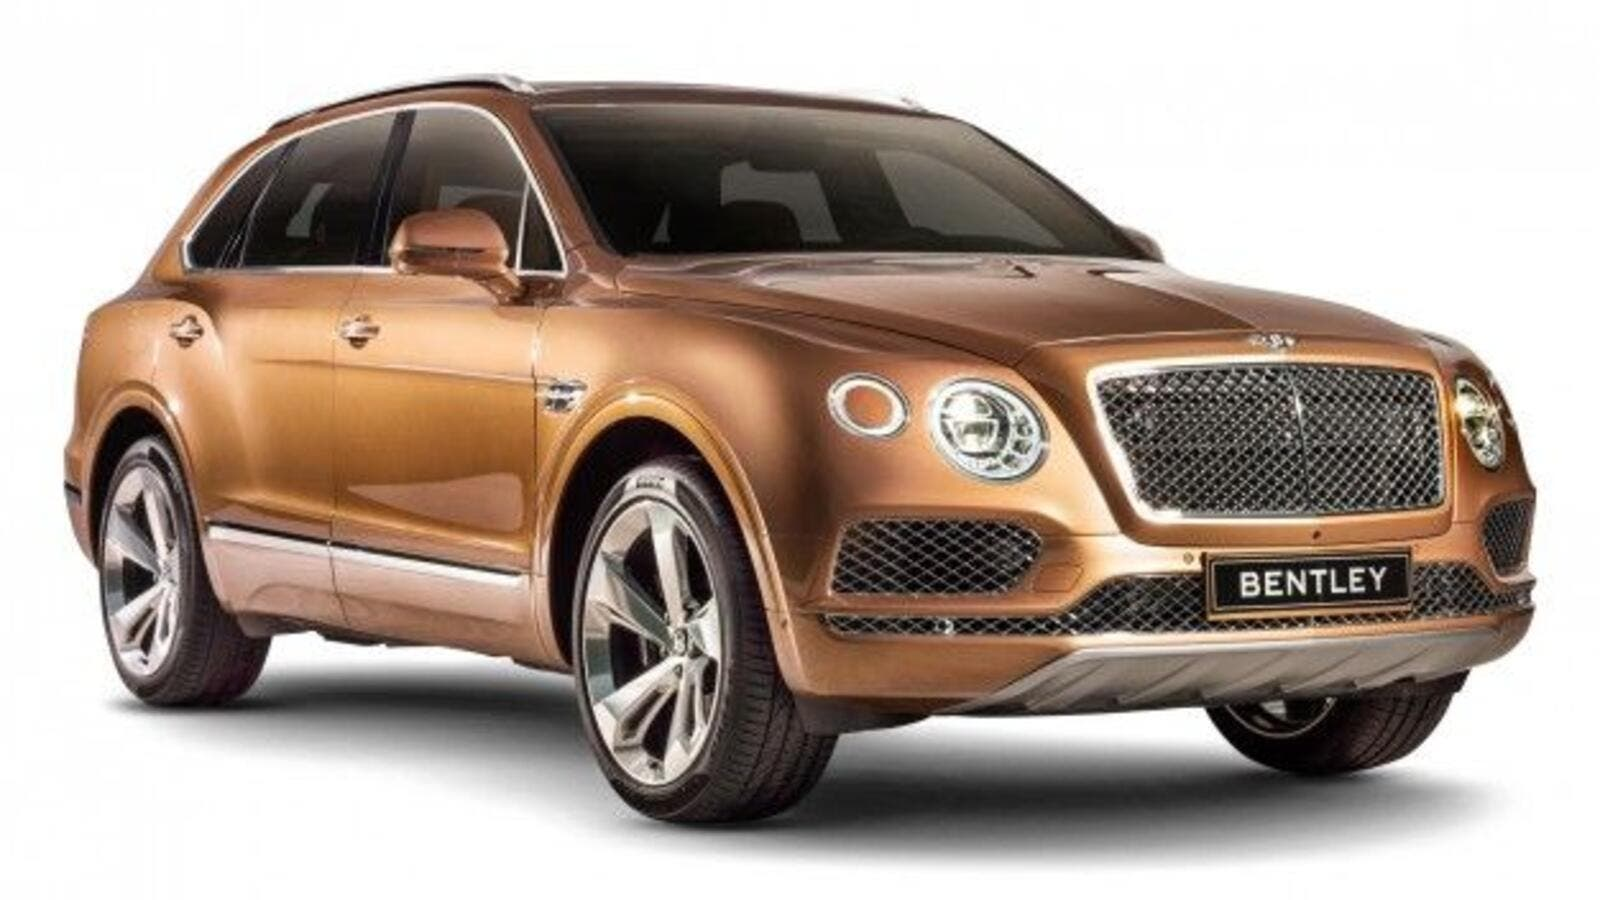 The UAE population is very small but its dealer tops the world for Bentley sales. The Bentley Bentayga 2017. (Pinterest)